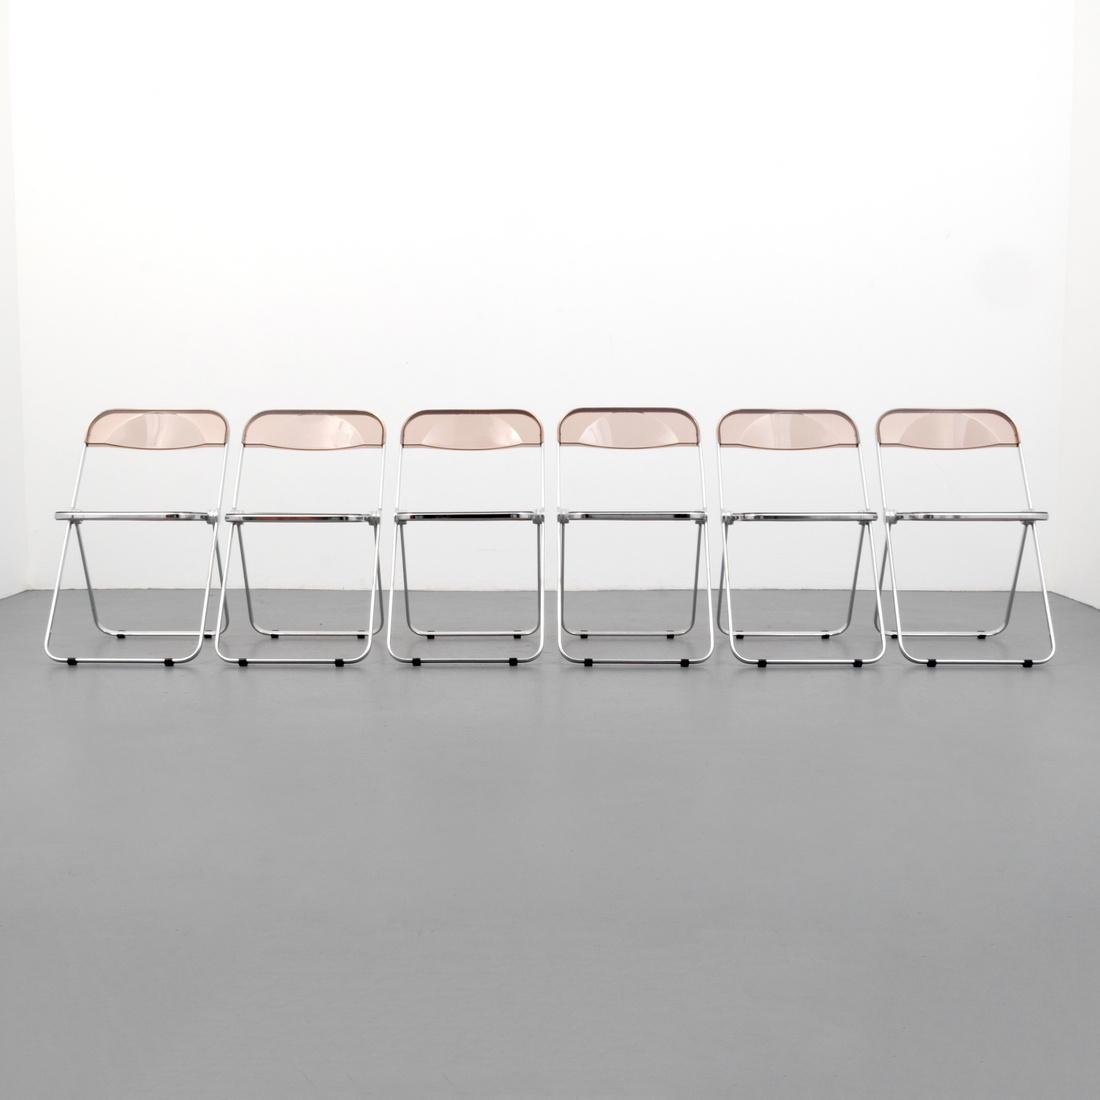 Giancarlo Piretti PLIA Folding Chairs, Set of 6 - 8